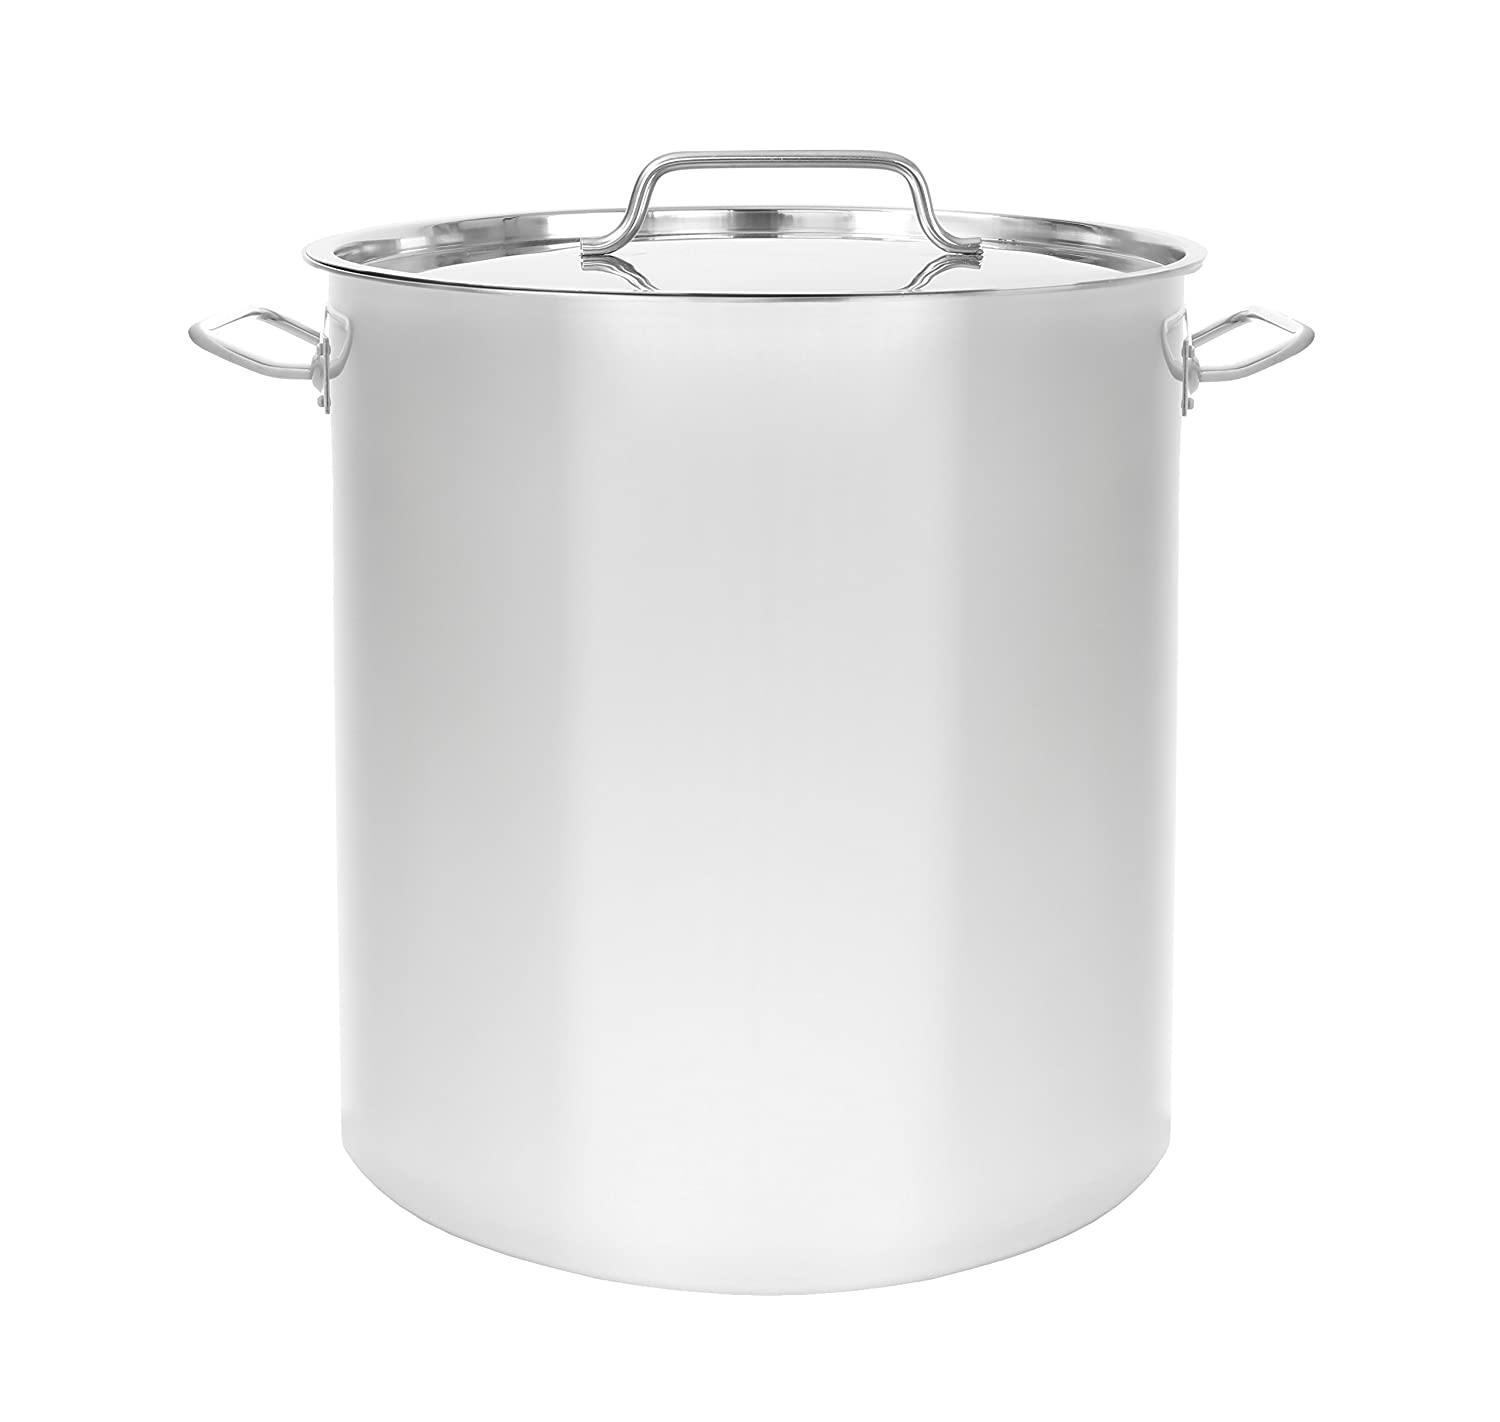 CONCORD Triply Bottom Stainless Steel Stock Pot Home Brew Kettle (40 QT) Concord Cookware S40-100-TB